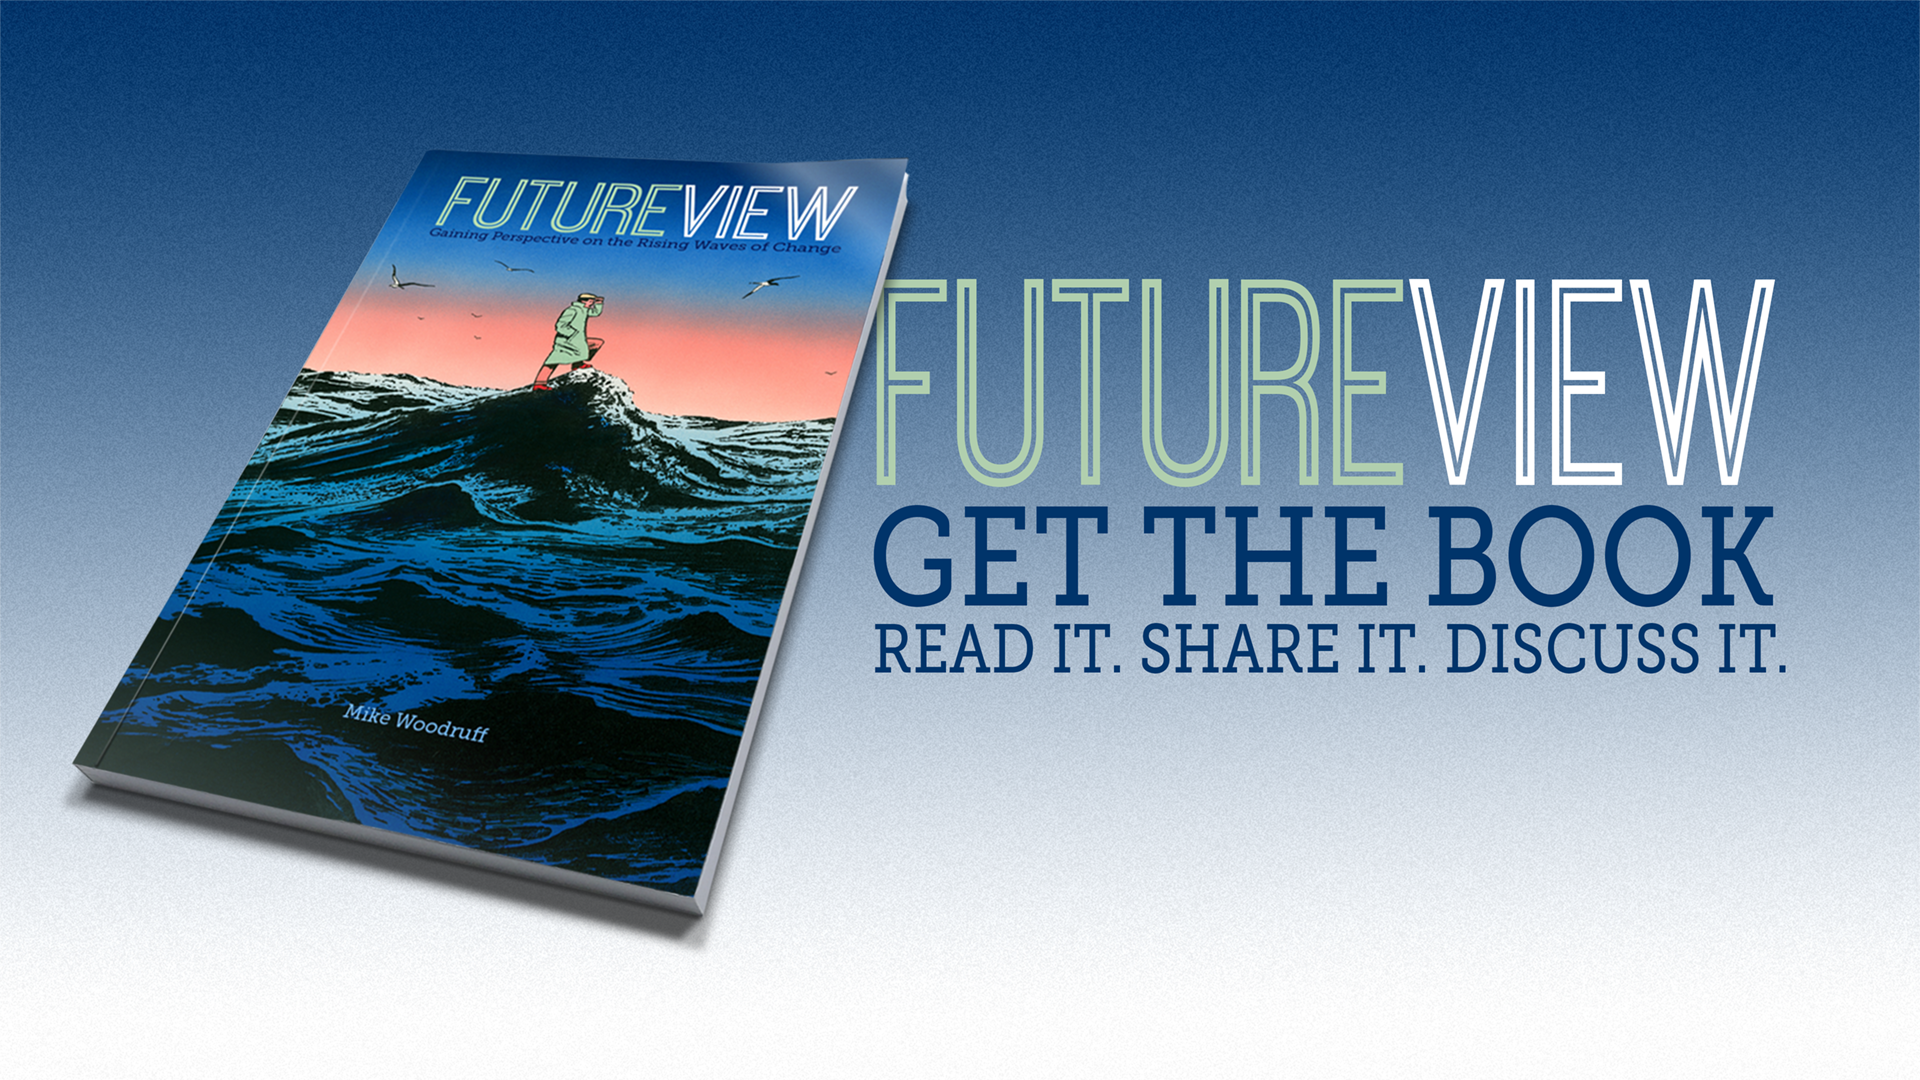 FutureViewNEWweb